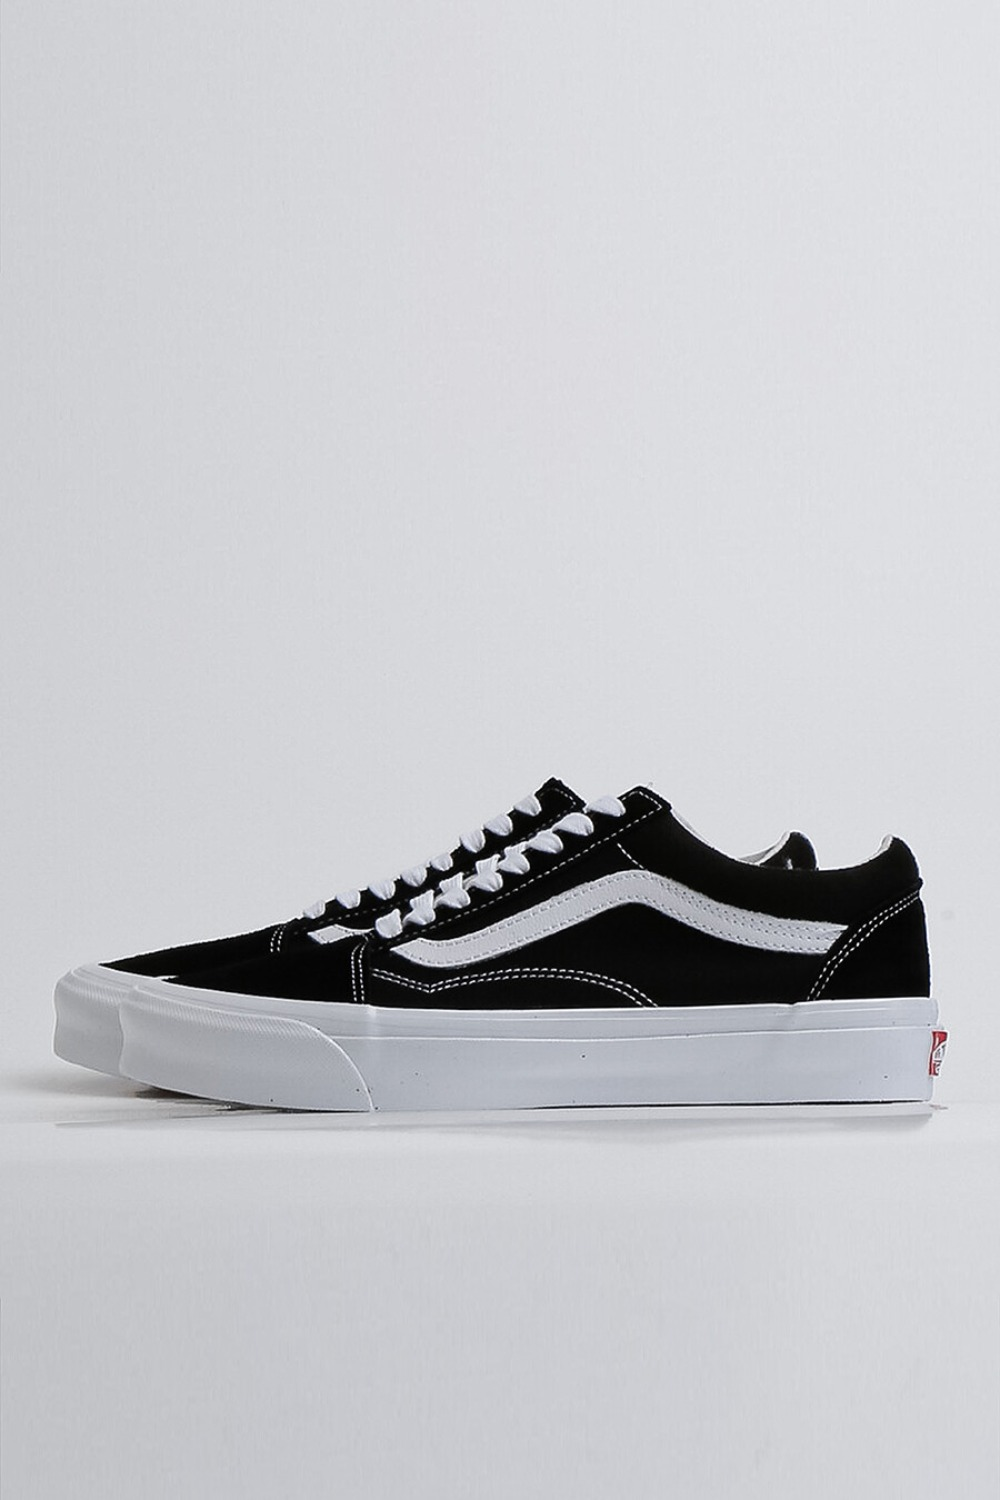 (RESTOCK)OG OLD SKOOL LX(SUEDE/CANVAS) BLACK/TRUE WHITE